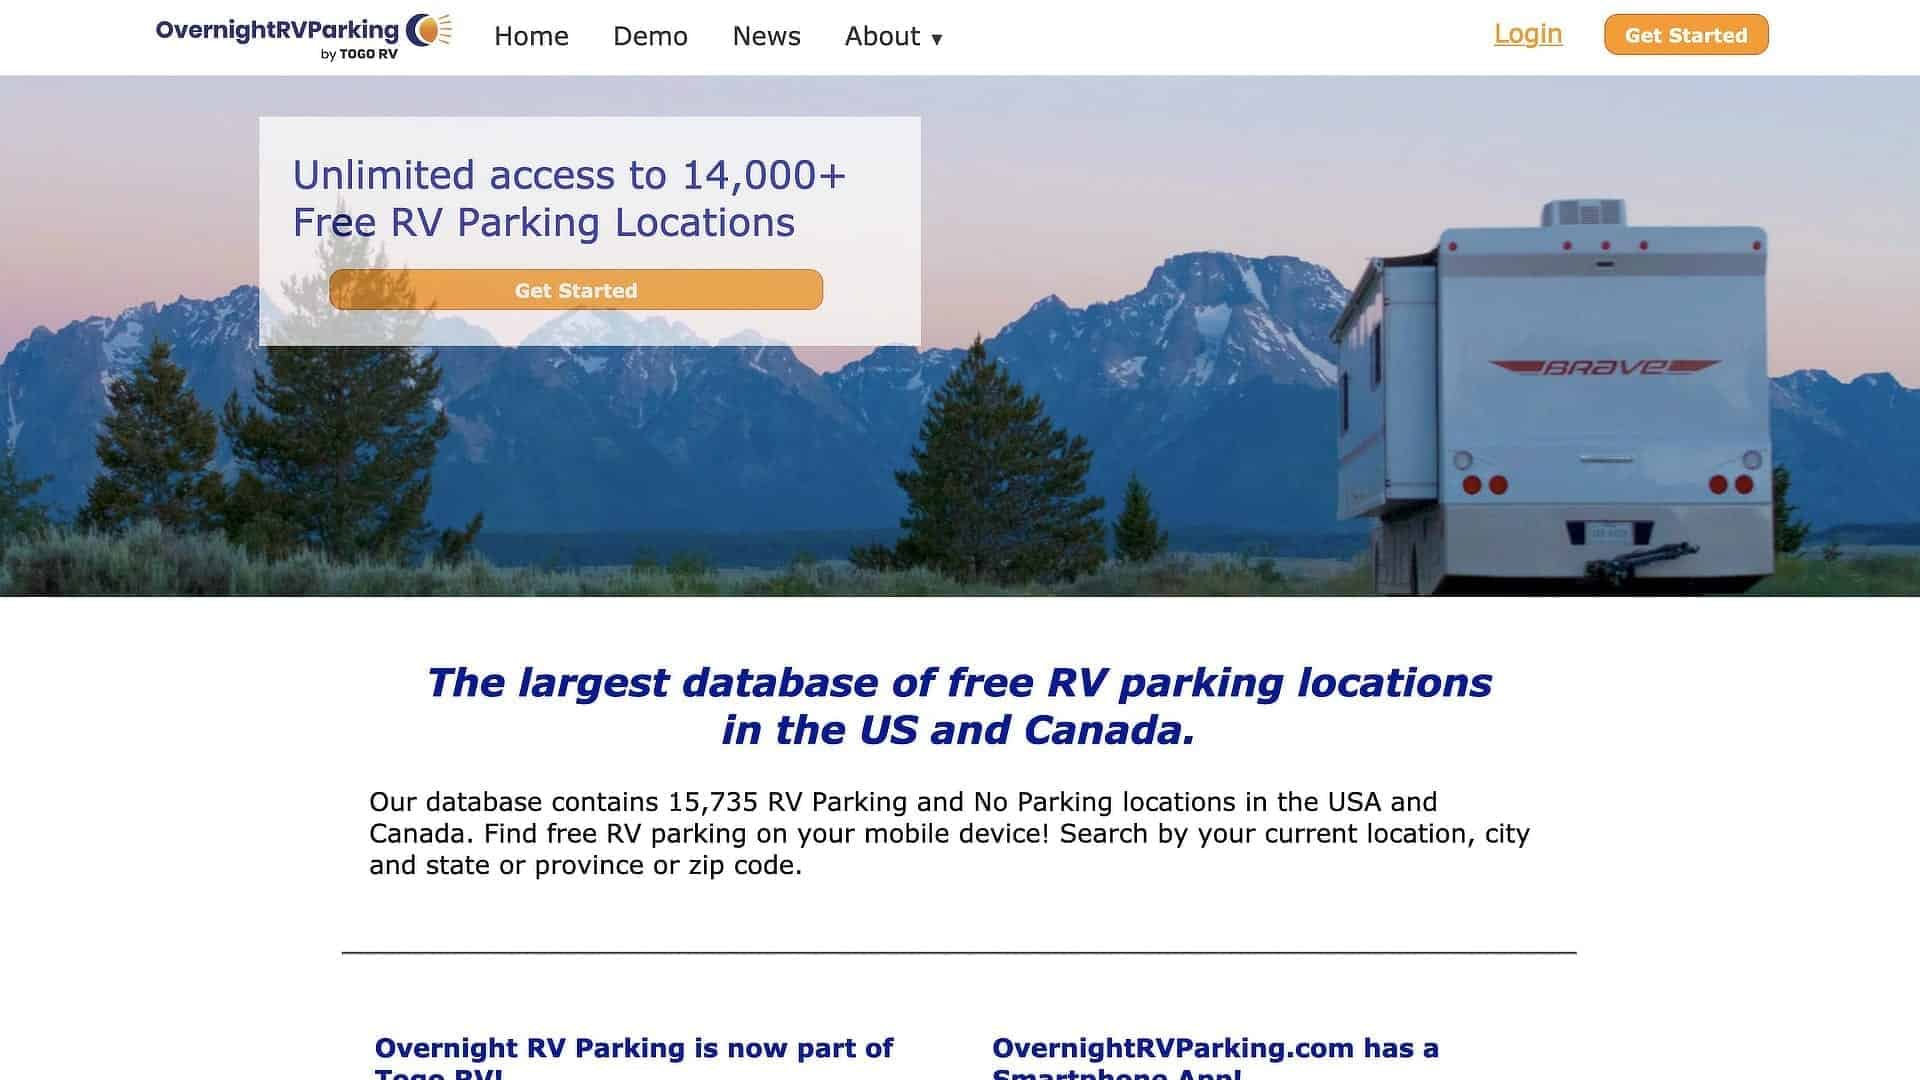 OvernightRVParking.com is a fantastic resource for finding free overnight RV parking spots.